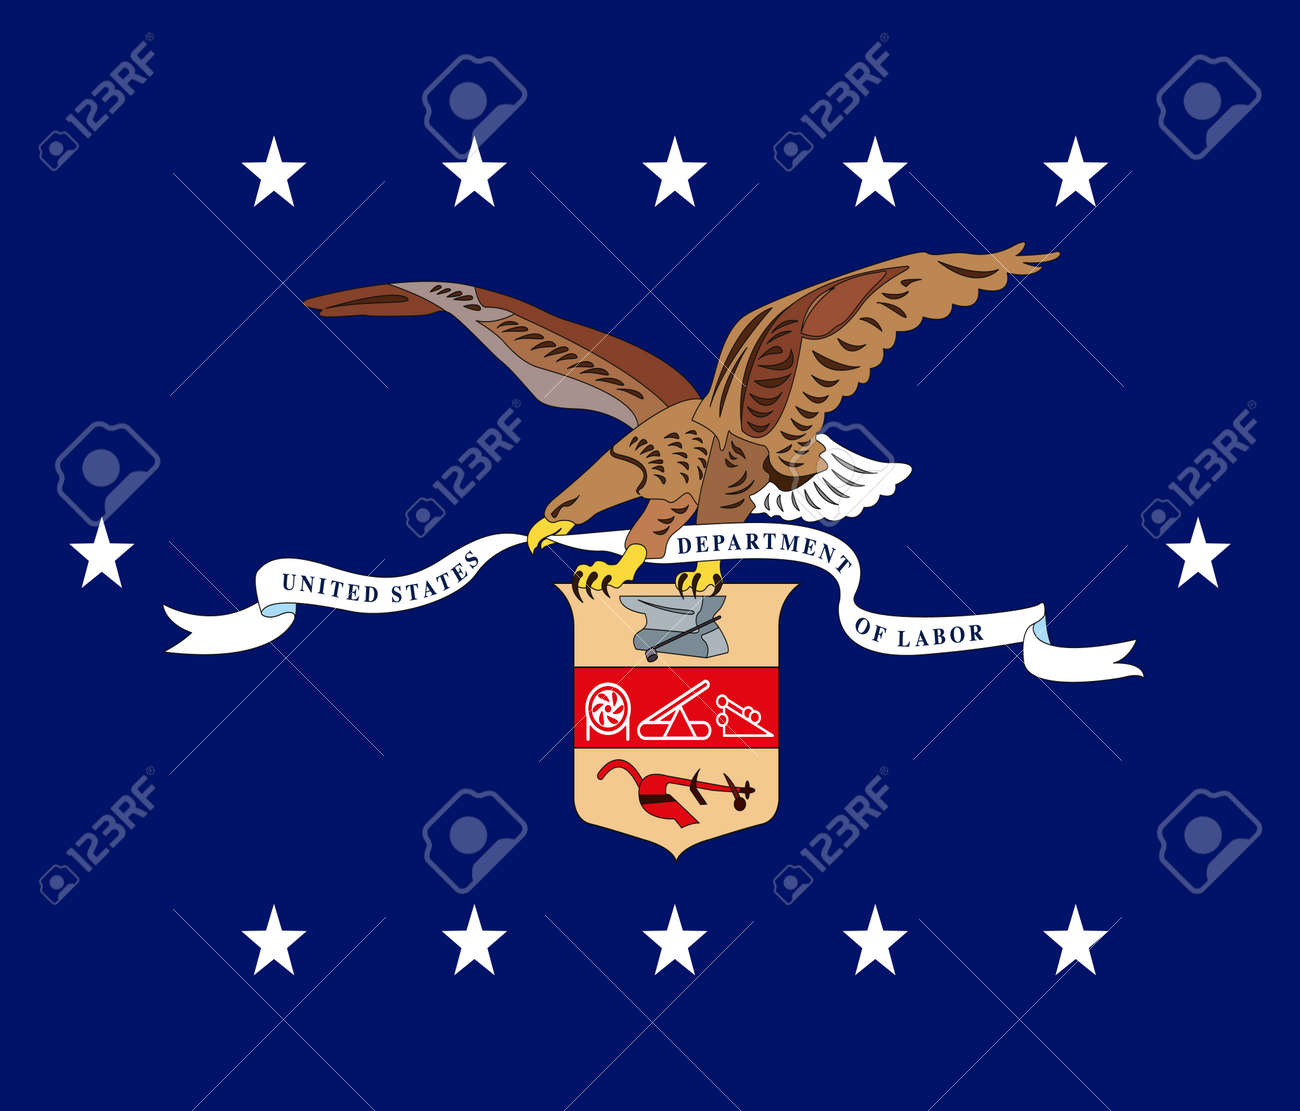 US Department of Labor flag, United States of America, vector illustration - 172855764